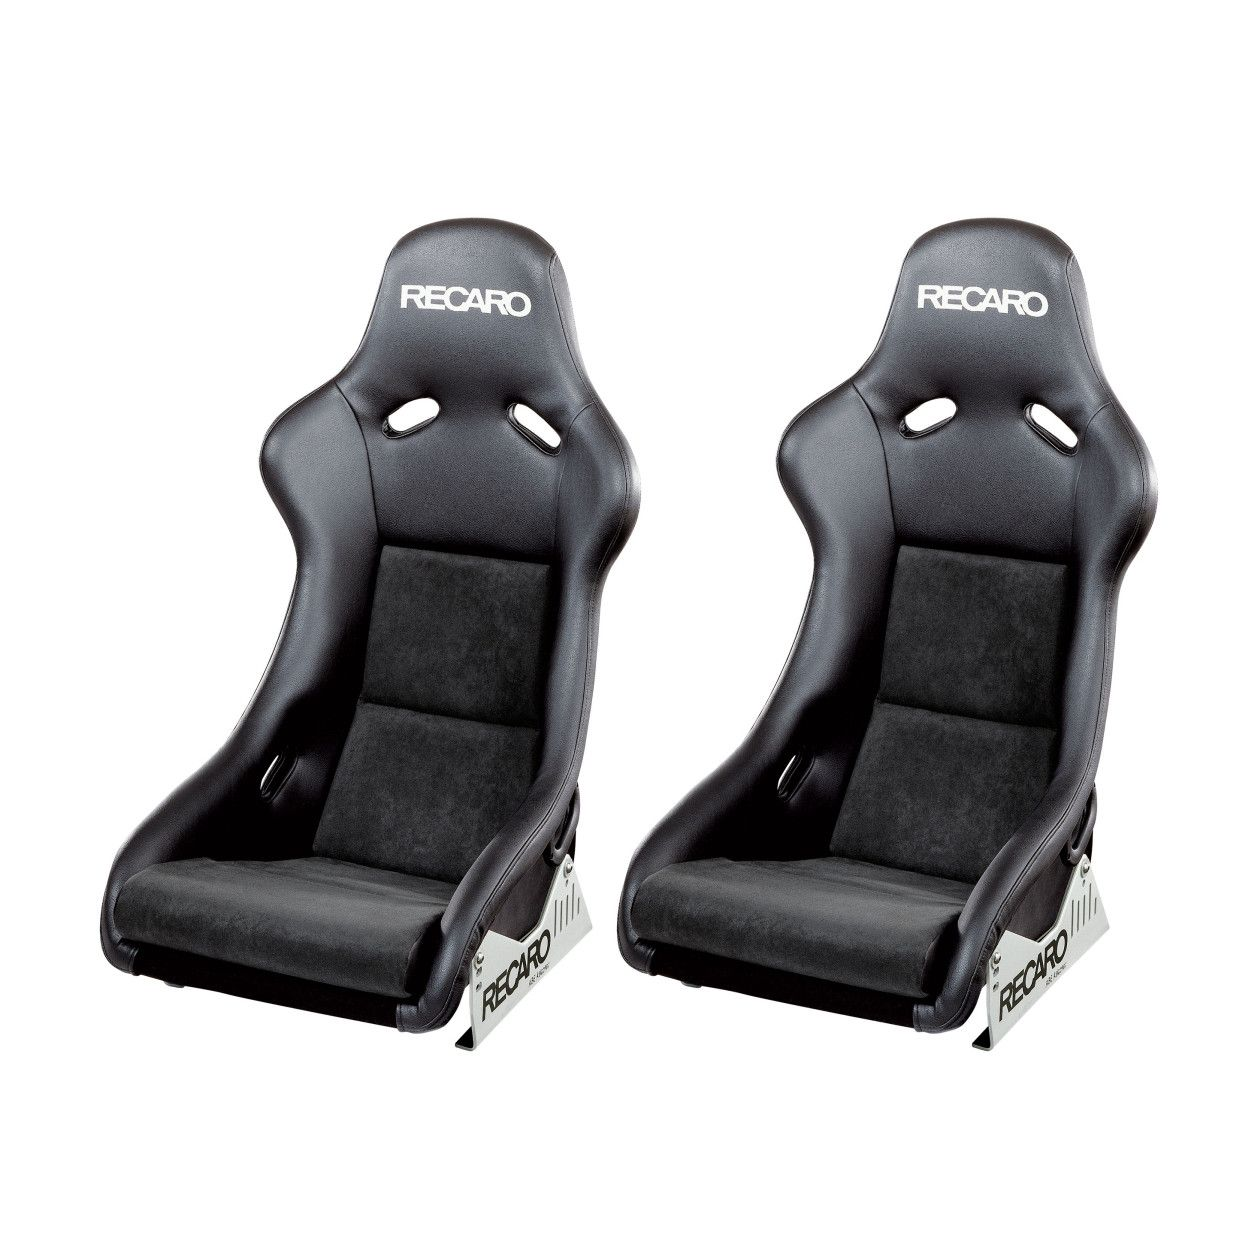 2 X Recaro Pole Position Abe Bucket Seats Ambla Leather Dinamica Suede Black Ebay